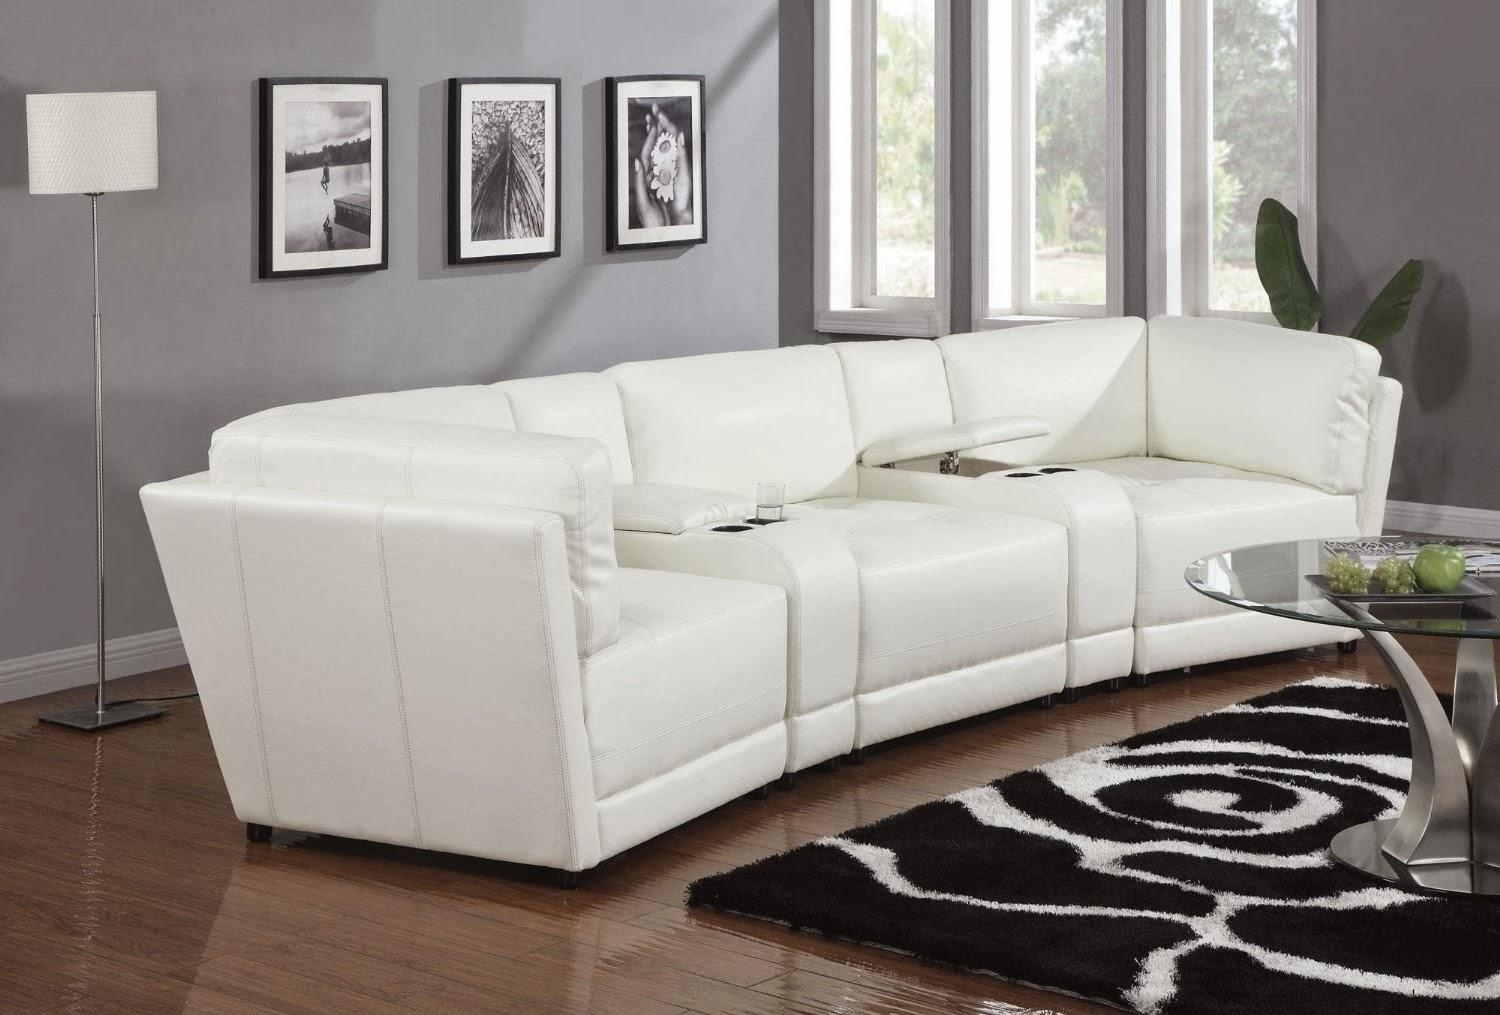 Sofa Maryland Home Design Furniture Decorating Amazing Simple With For Sofa Maryland (Image 9 of 20)